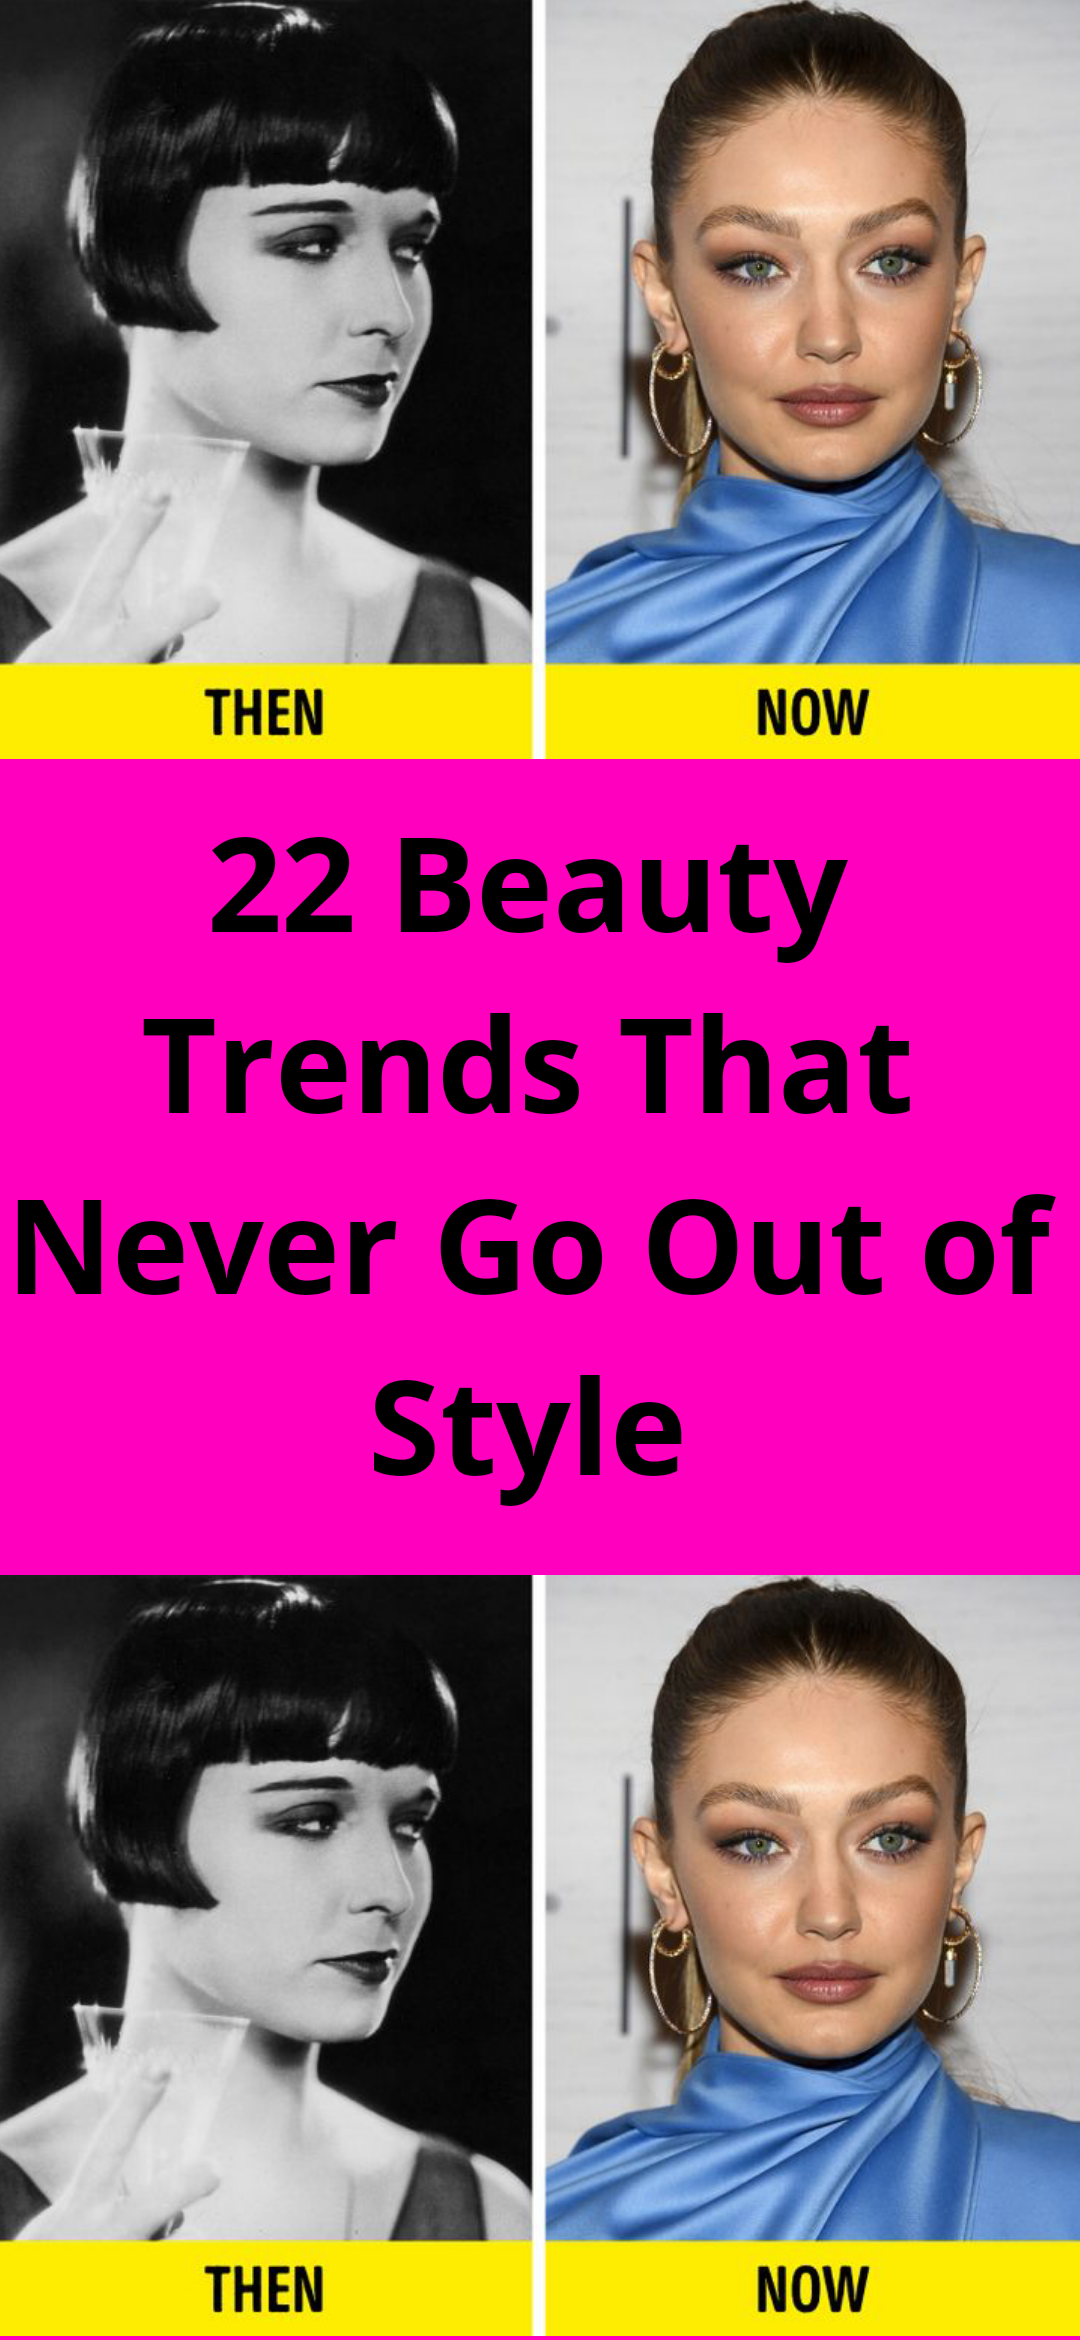 22 Beauty Trends That Never Go Out of Style